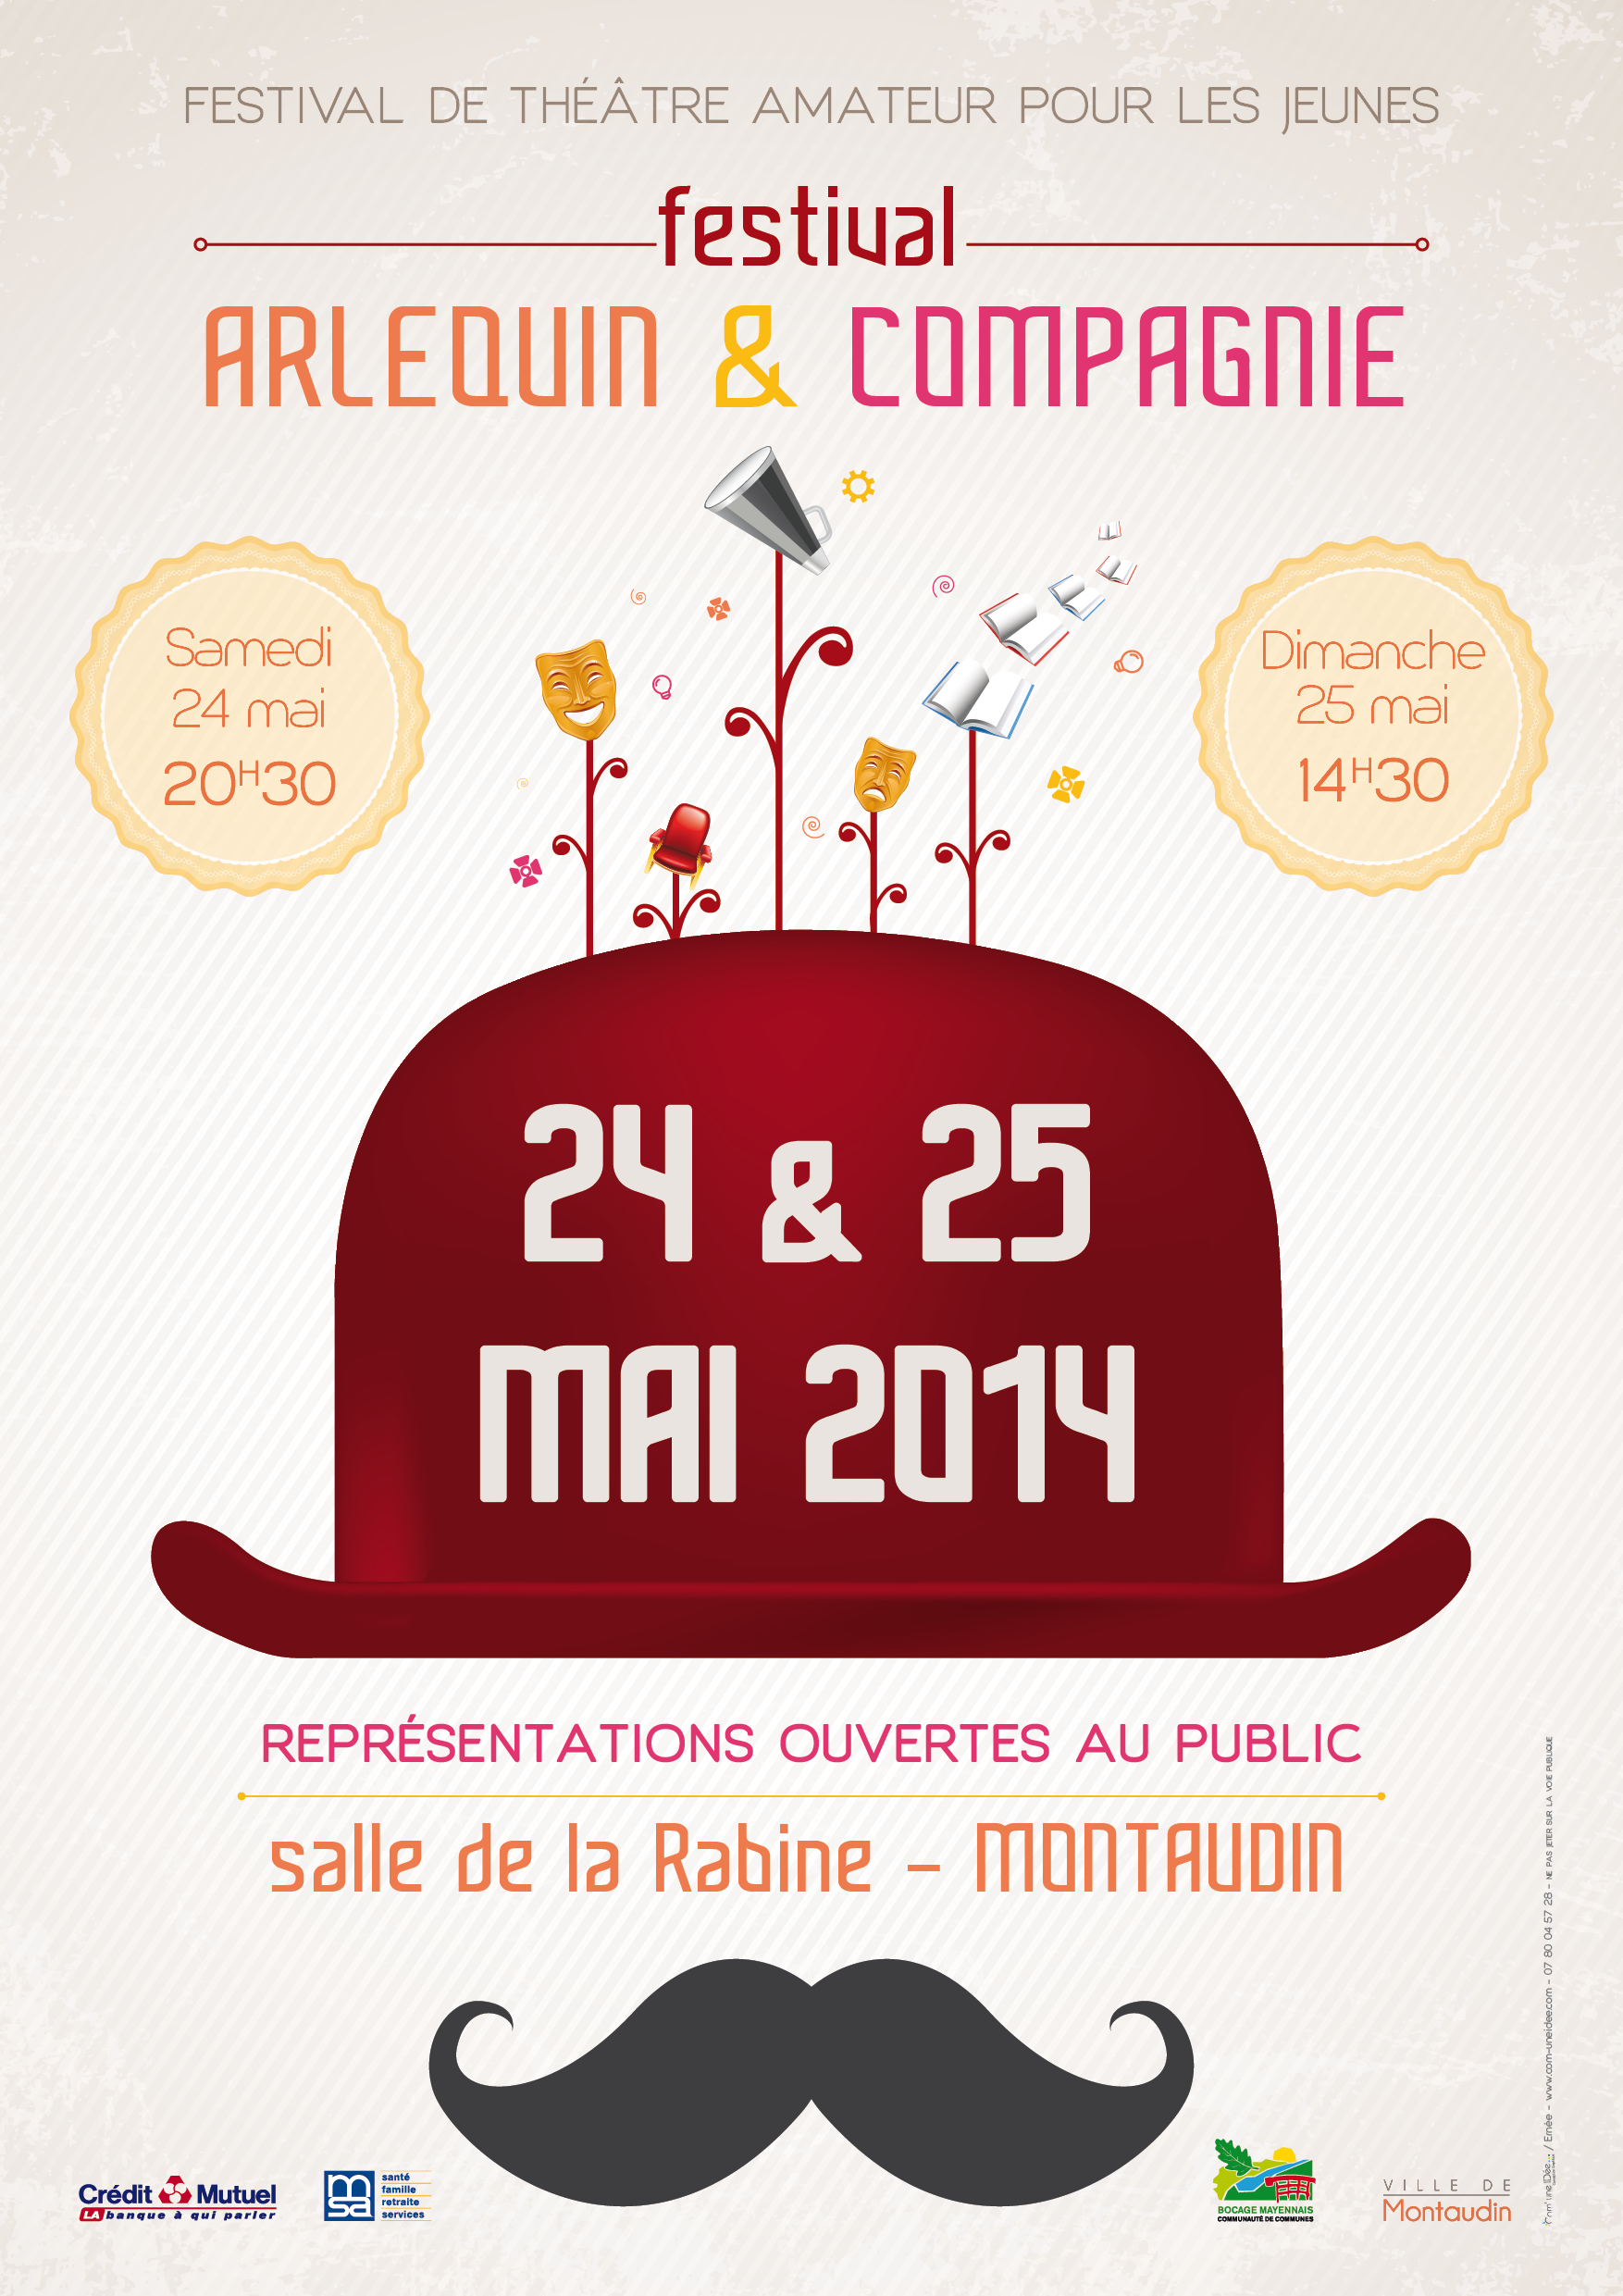 Festival Arlequin & Compagnie